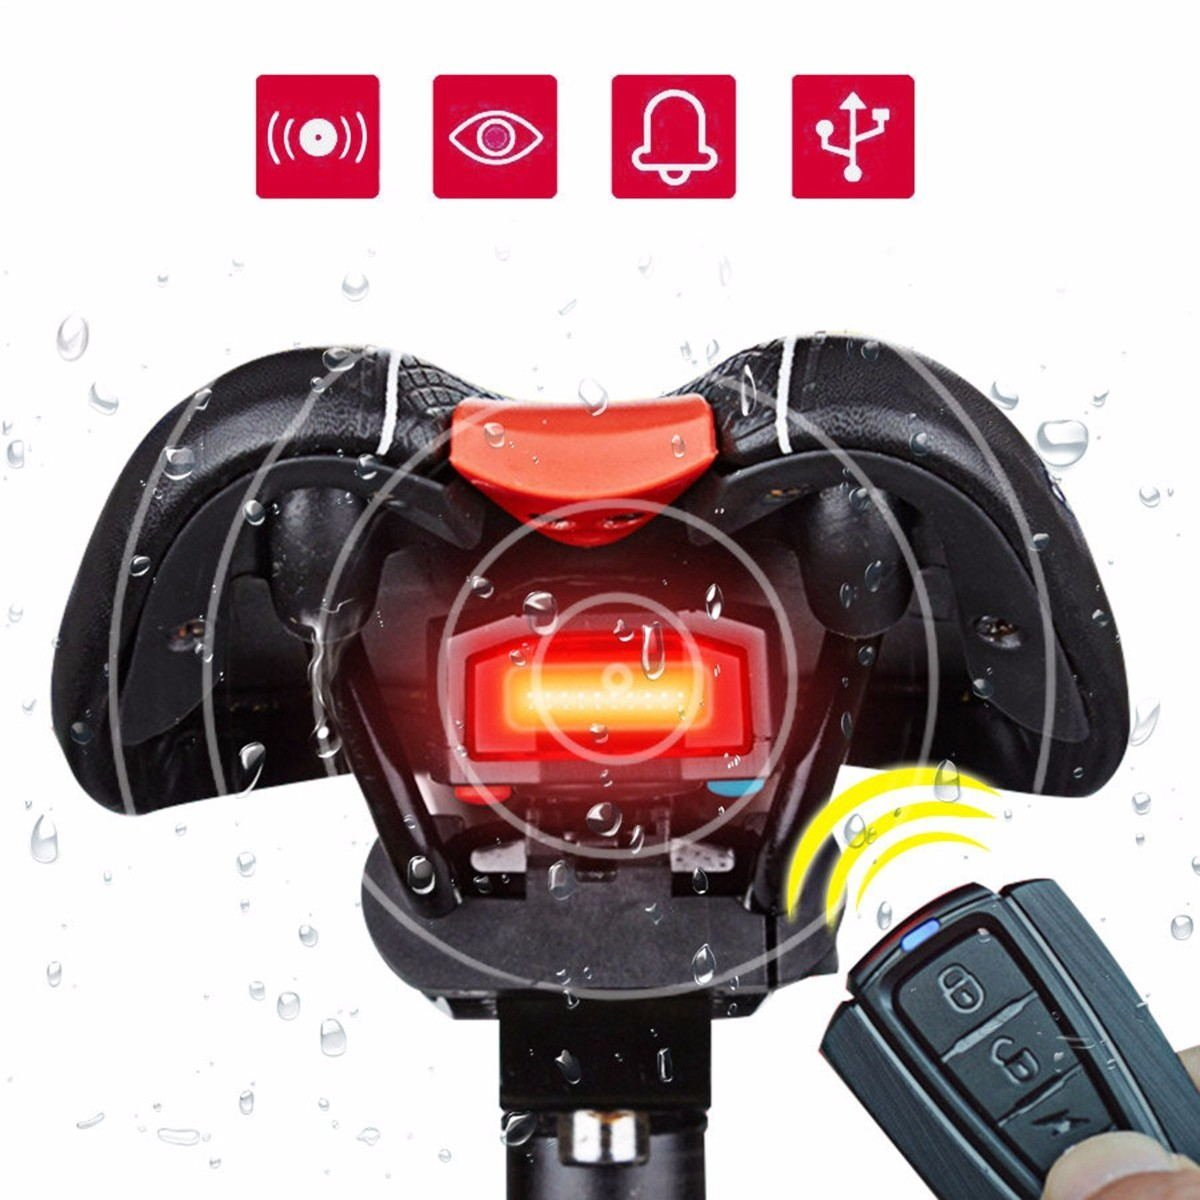 Bicycle Wireless Taillight OUTERDO 3 in 1 Cycling Alarm Bike Light Mountain Bike Bell Tail Light with Wireless Remote USB Charging Waterproof LED Bike tail lamp